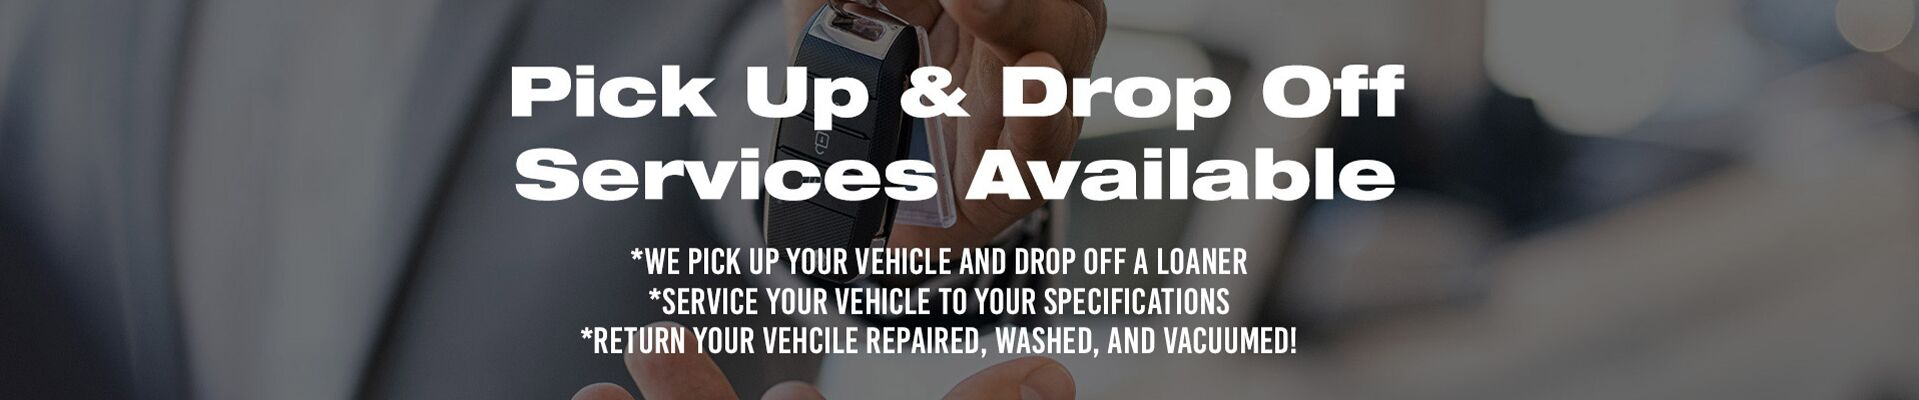 Pick Up & Drop Off